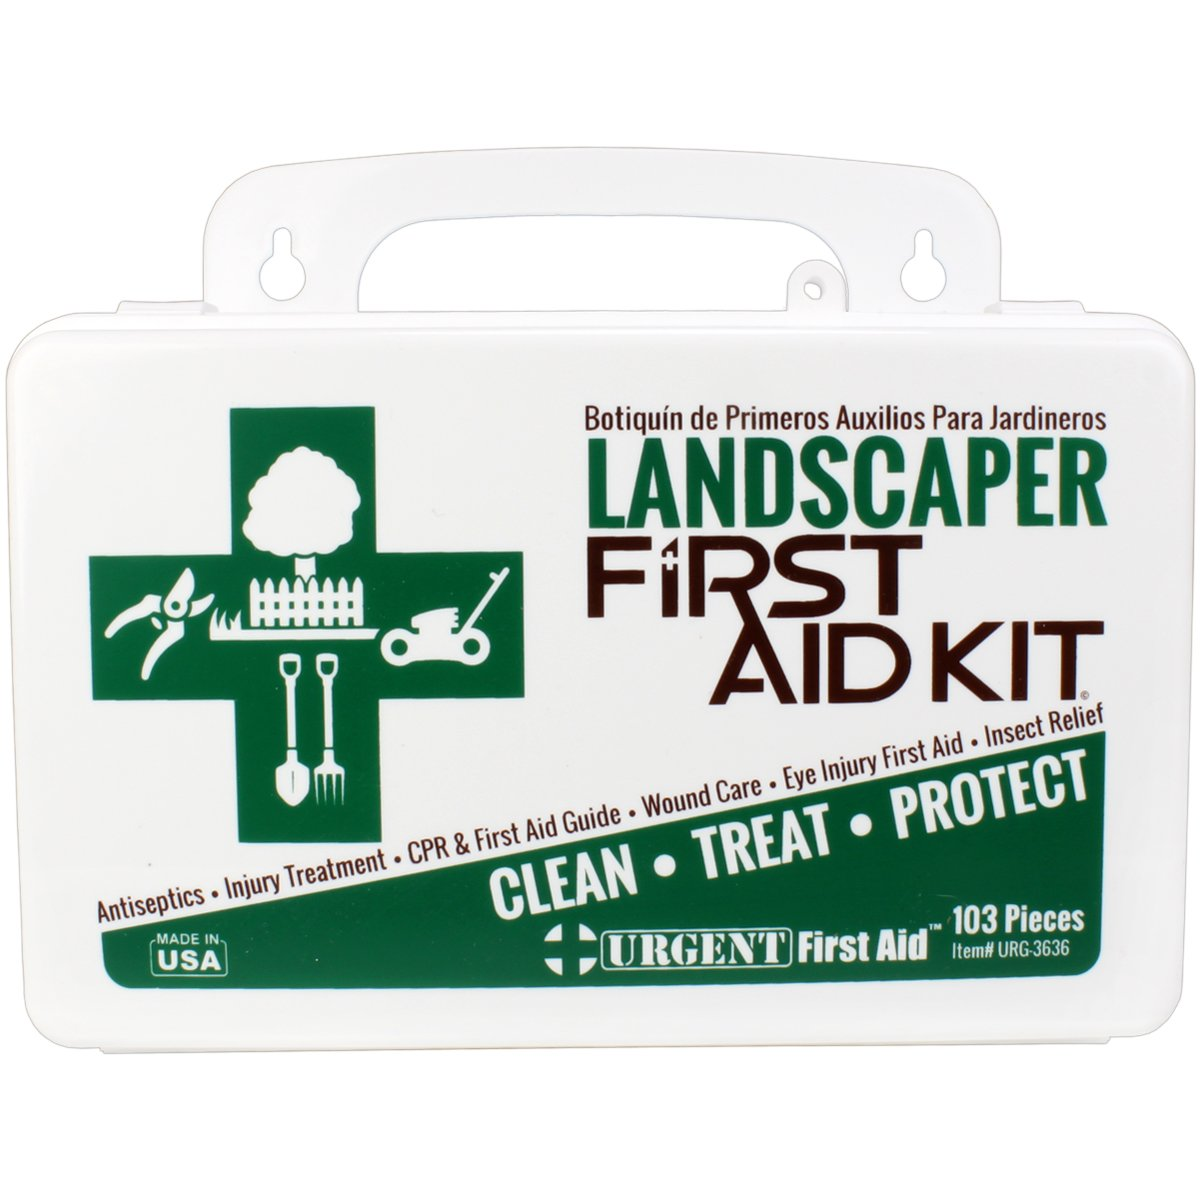 Landscaper & Tree Trimming First Aid Kit, OSHA Compliant, 10 Unit, 103 Piece, Plastic Case with Gasket to keep out moisture and dust - be OSHA Compliant: Special Extra first aid item content, too by Urgent First Aid (Image #3)